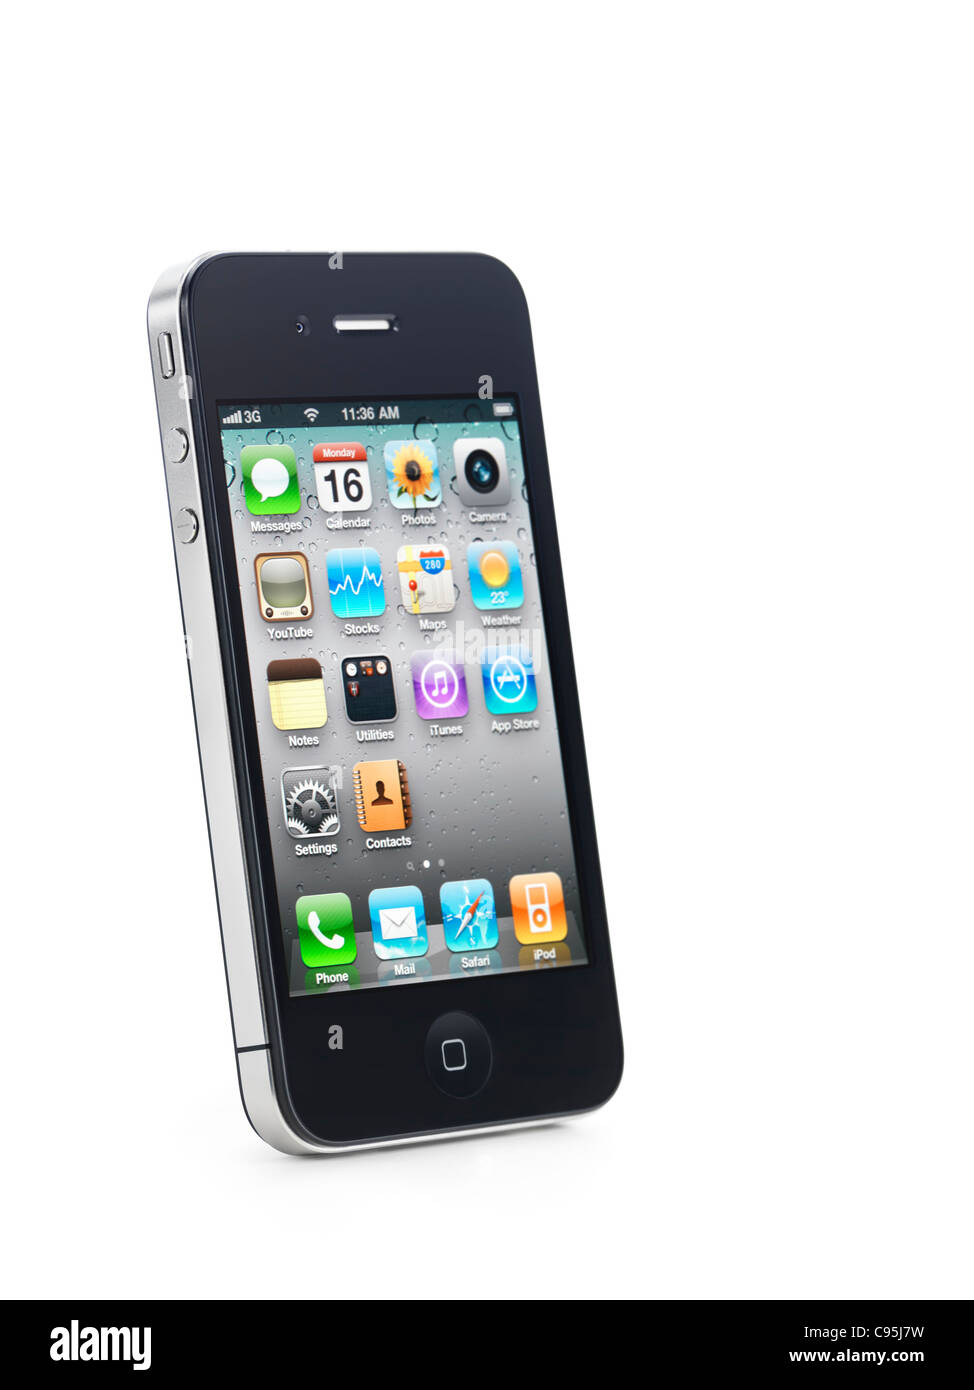 Apple iPhone 4 smartphone with desktop icons on its display isolated on white background - Stock Image